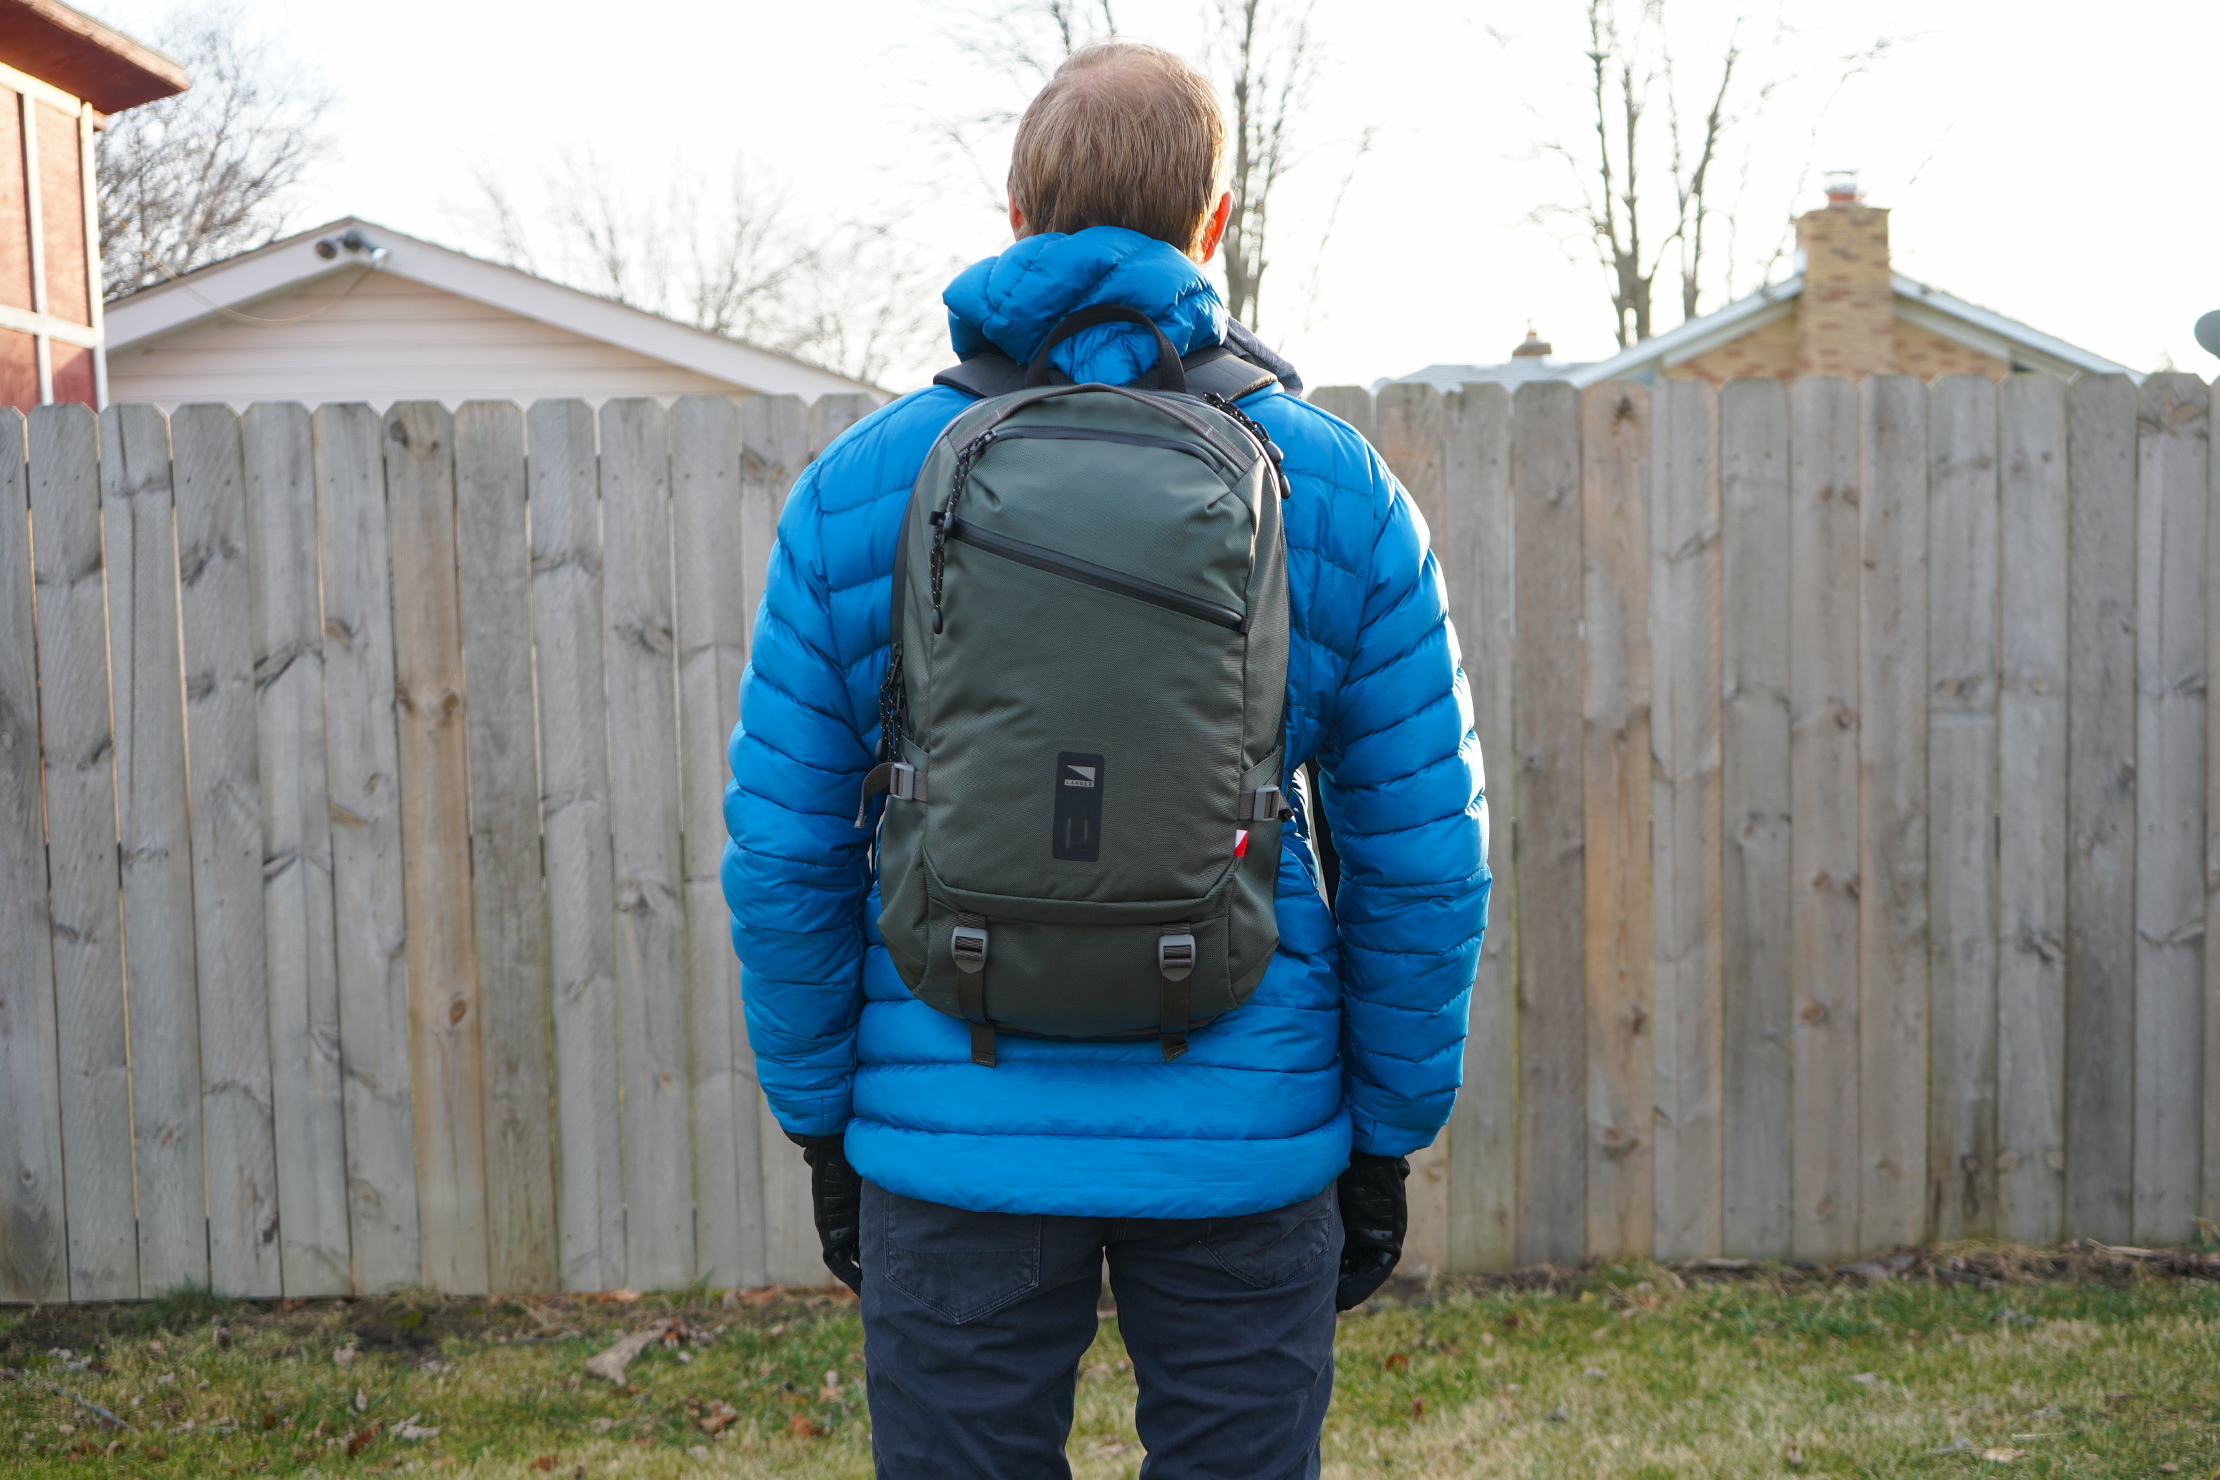 Lander Commuter Backpack 25L | Carrying the backpack on the way to the office